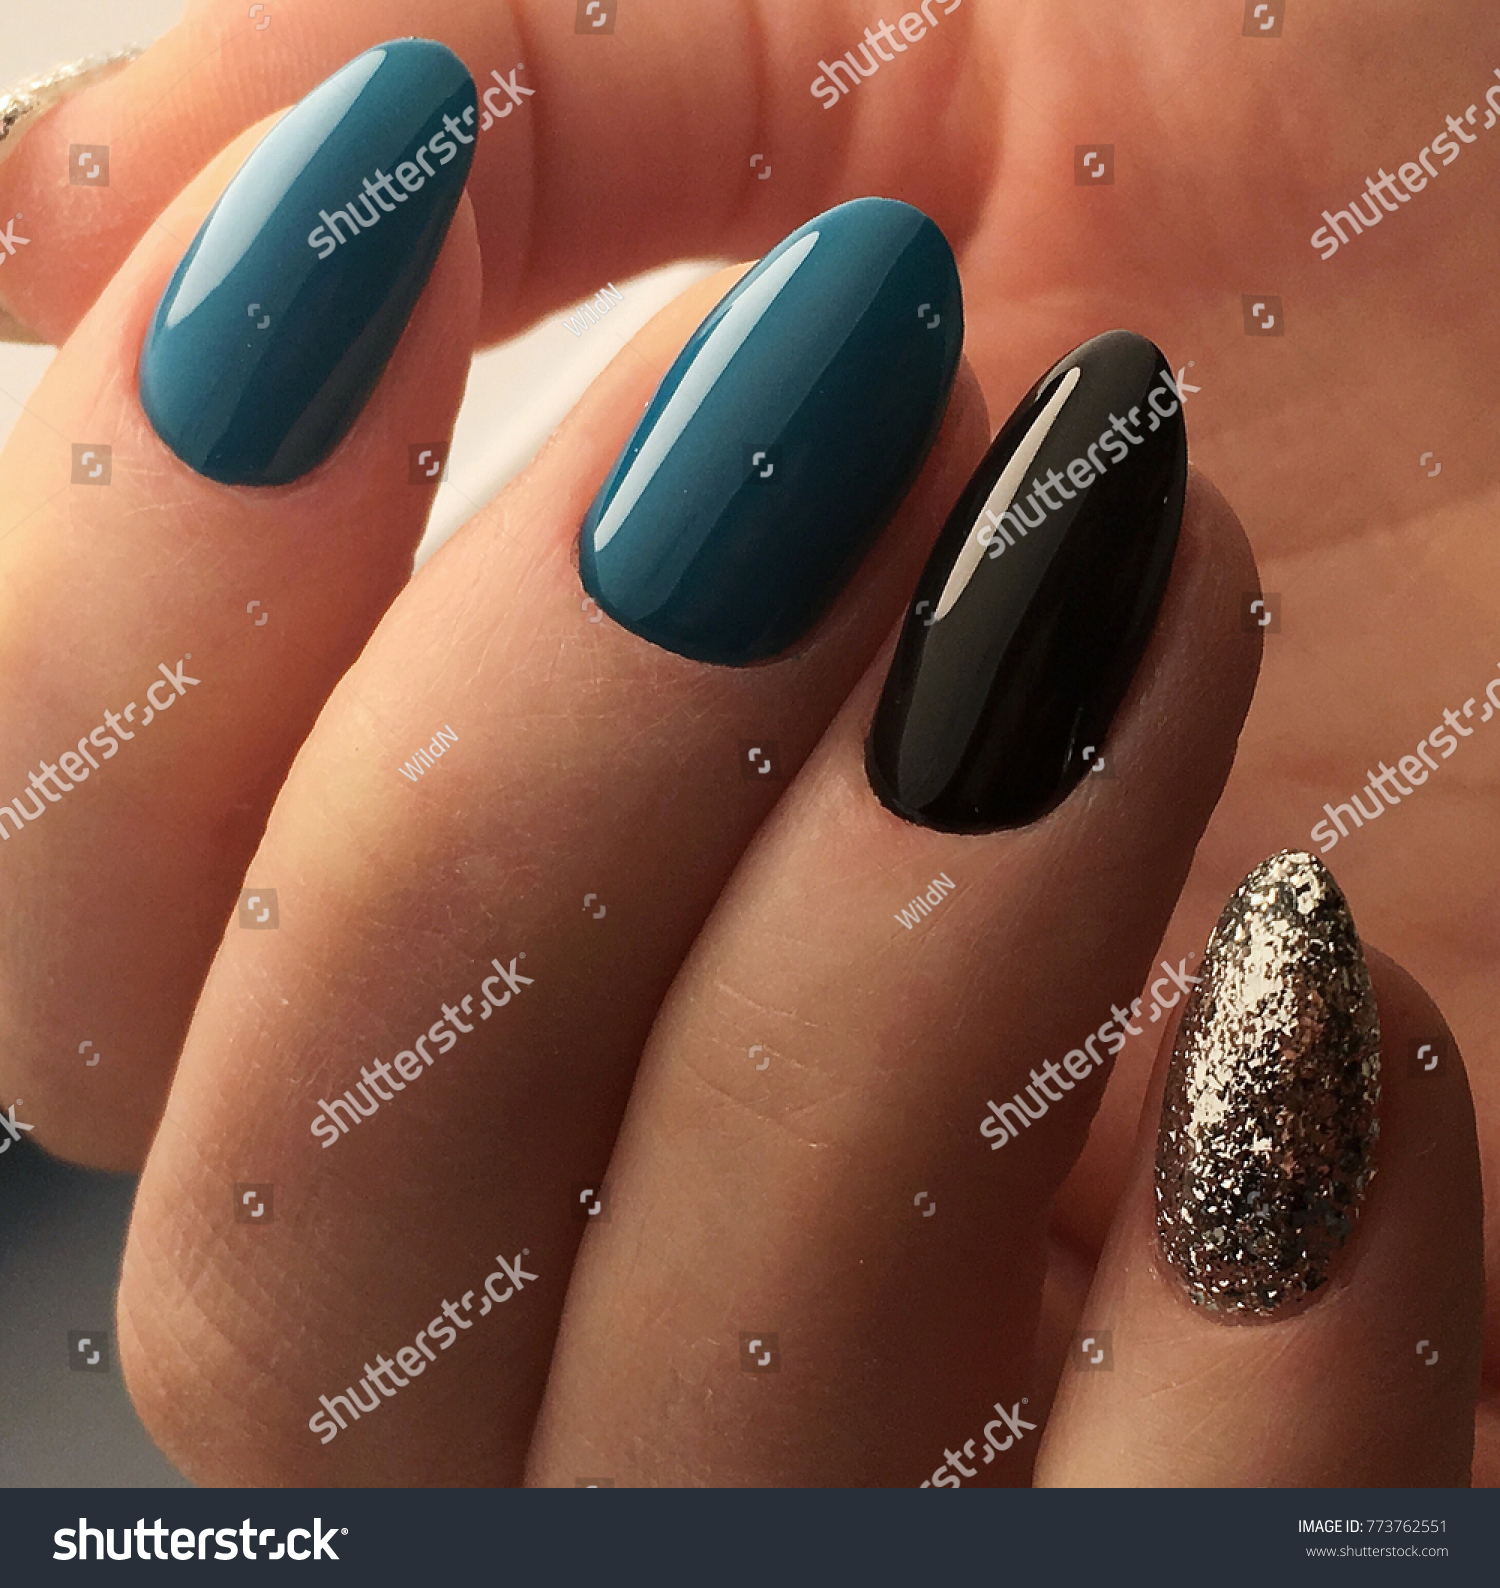 New Green Silver Luxury Nails Manicure Stock Photo (Royalty Free ...